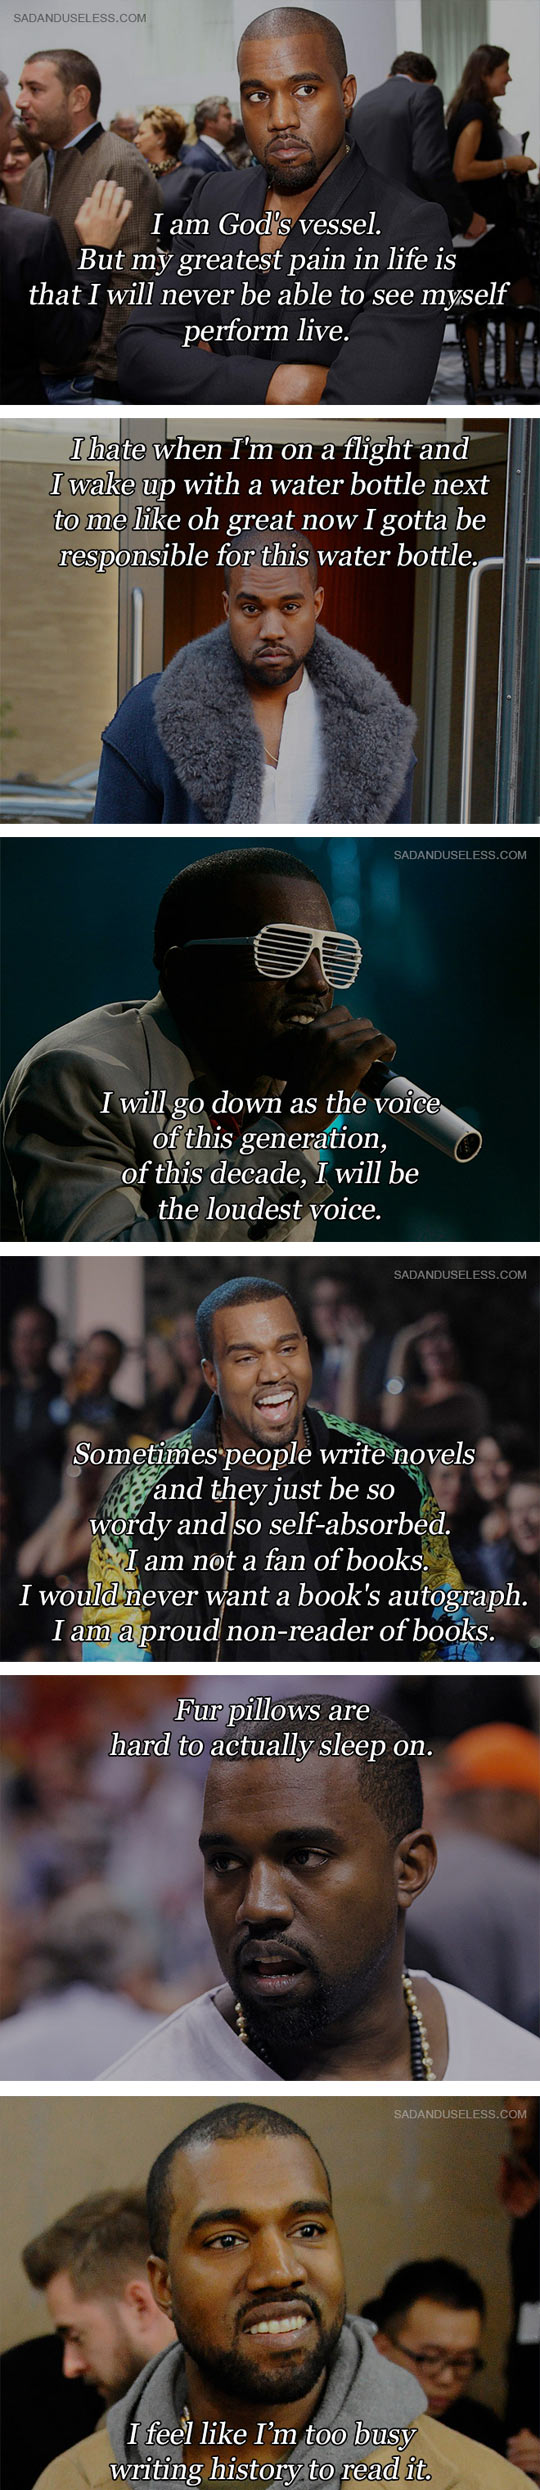 funny-Kanye-West-quotes-ridiculous